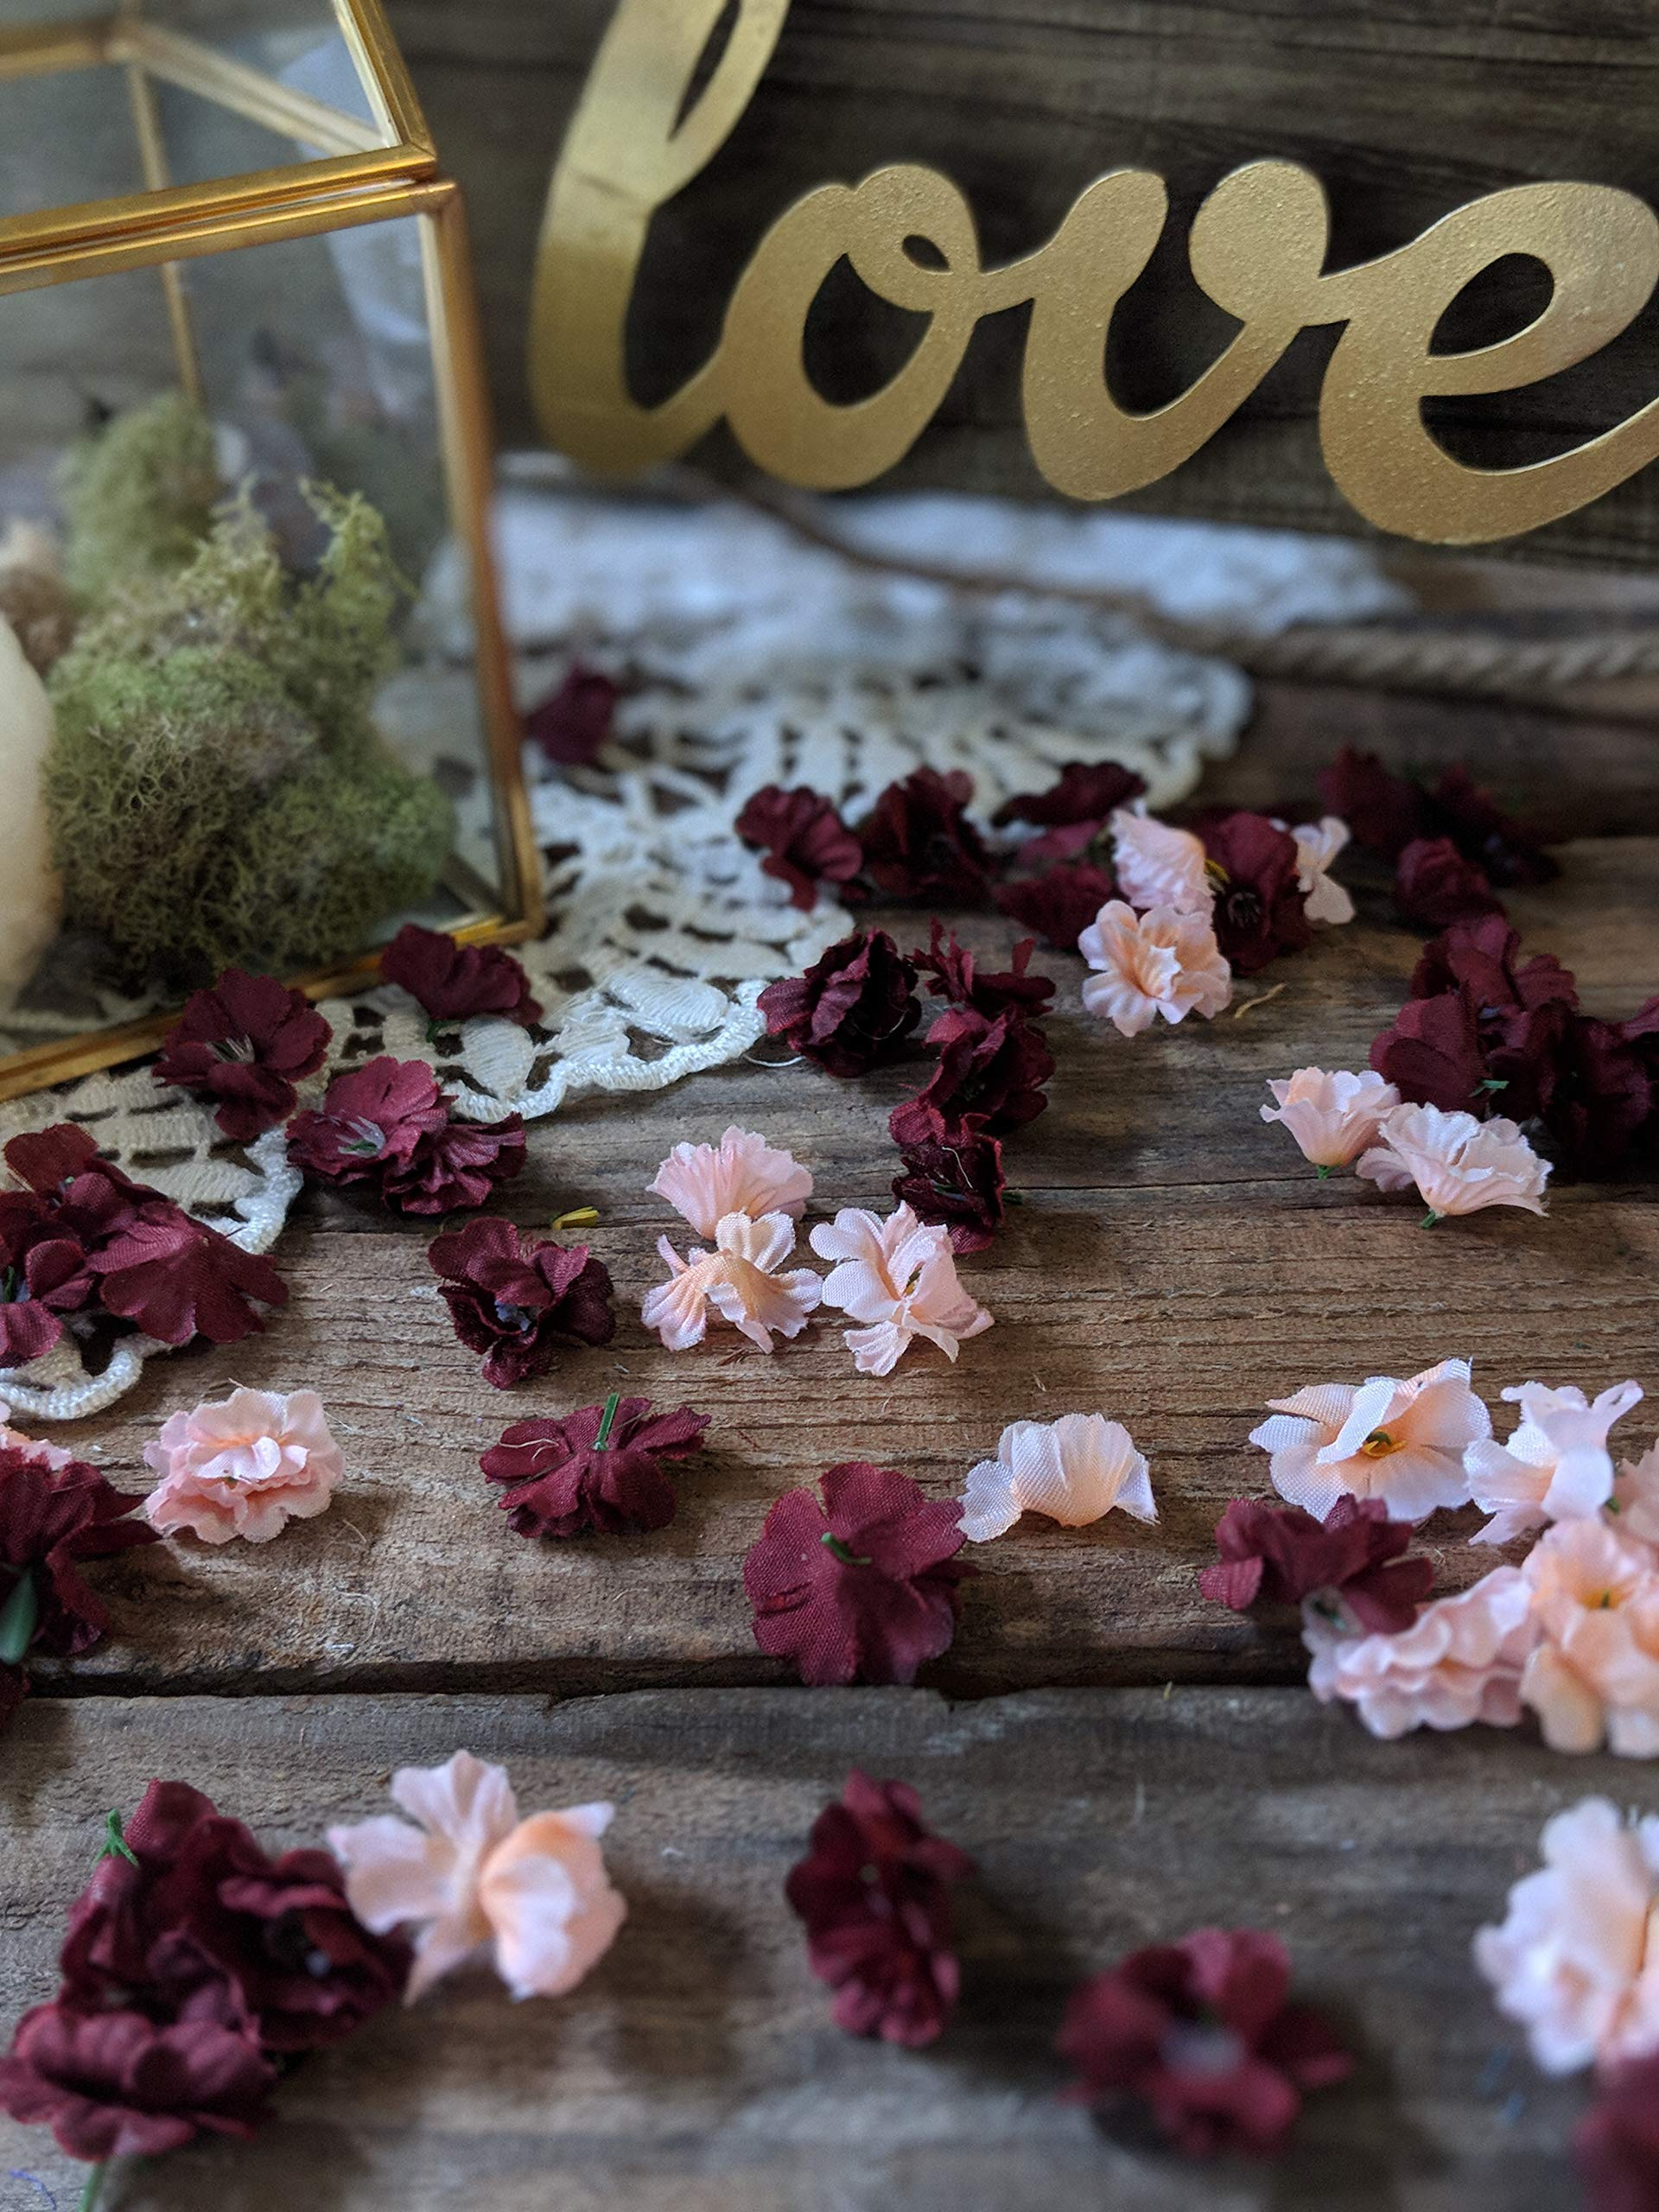 Wedding-Sweetheart-Table-Decorations-Table-Flower-Decor-Bridal-Shower-Decorations